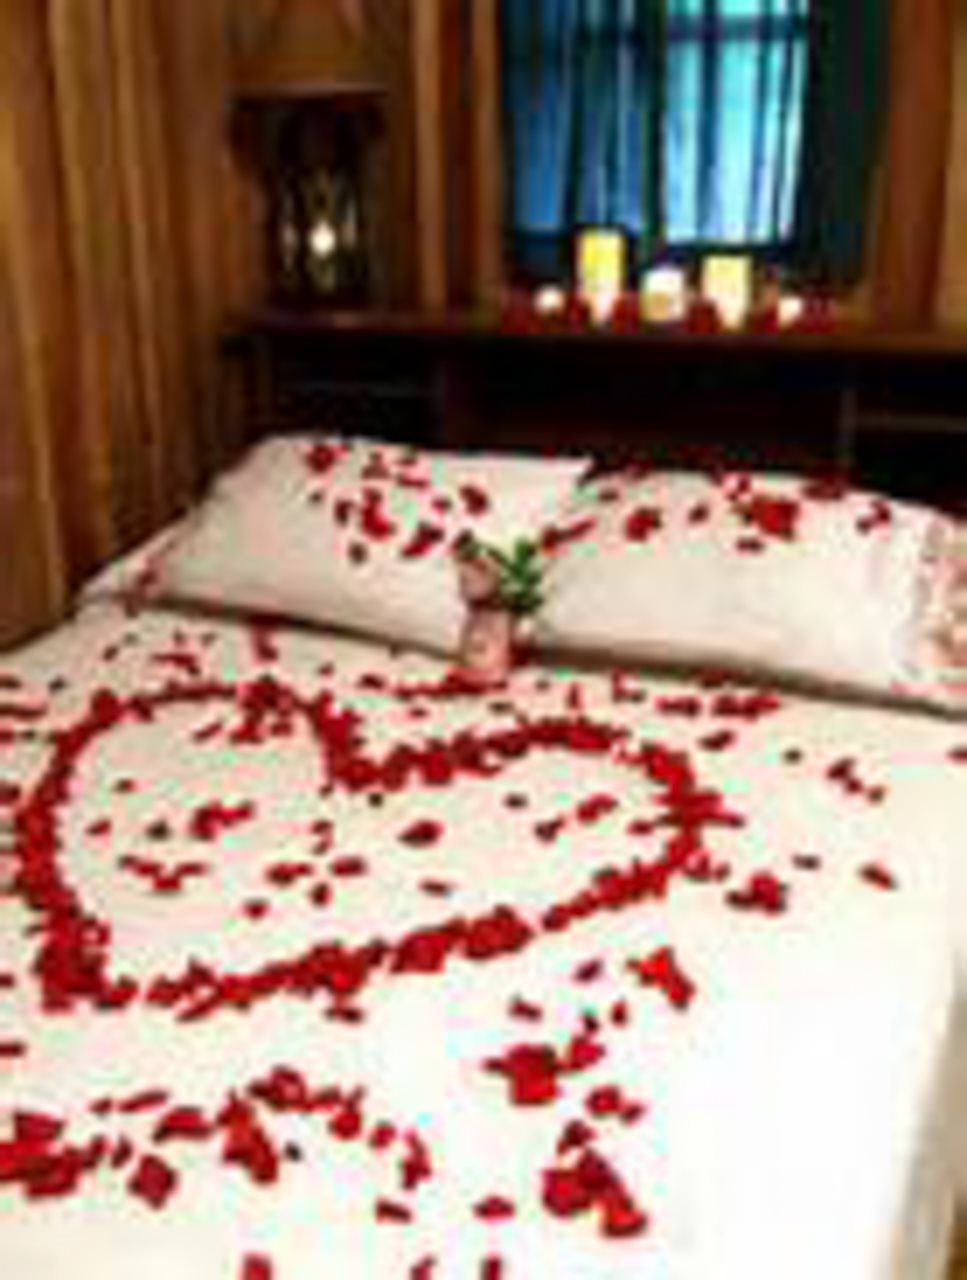 ROMANTIC SETUP FOR WEDDING NIGHT. Product Description; Customize & ROMANTIC SETUP FOR WEDDING NIGHT - LV Wedding Connection